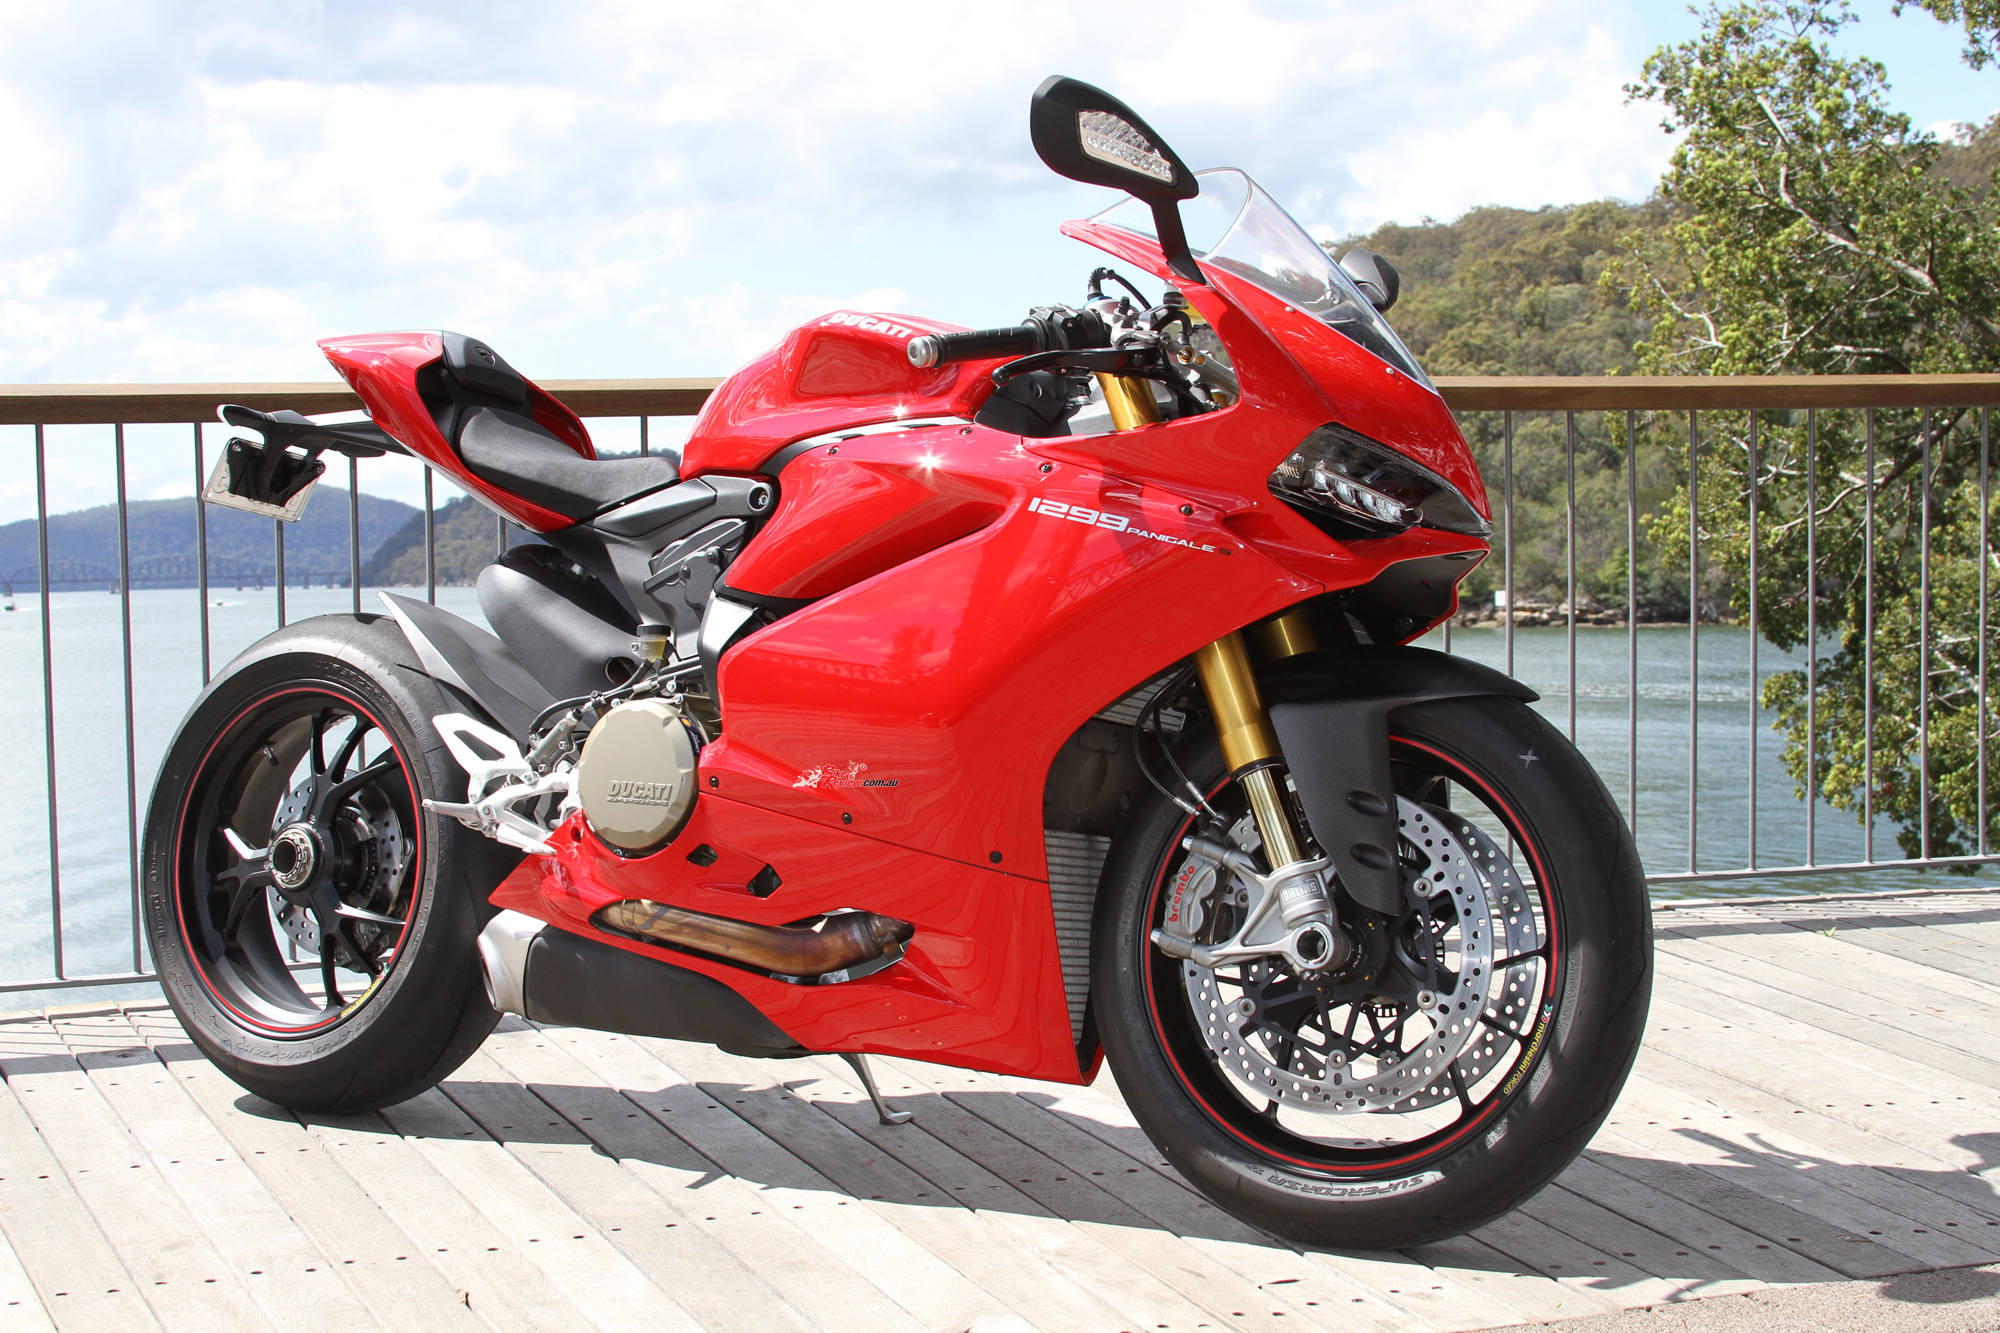 2015 ducati panigale 1299 s review - bike review